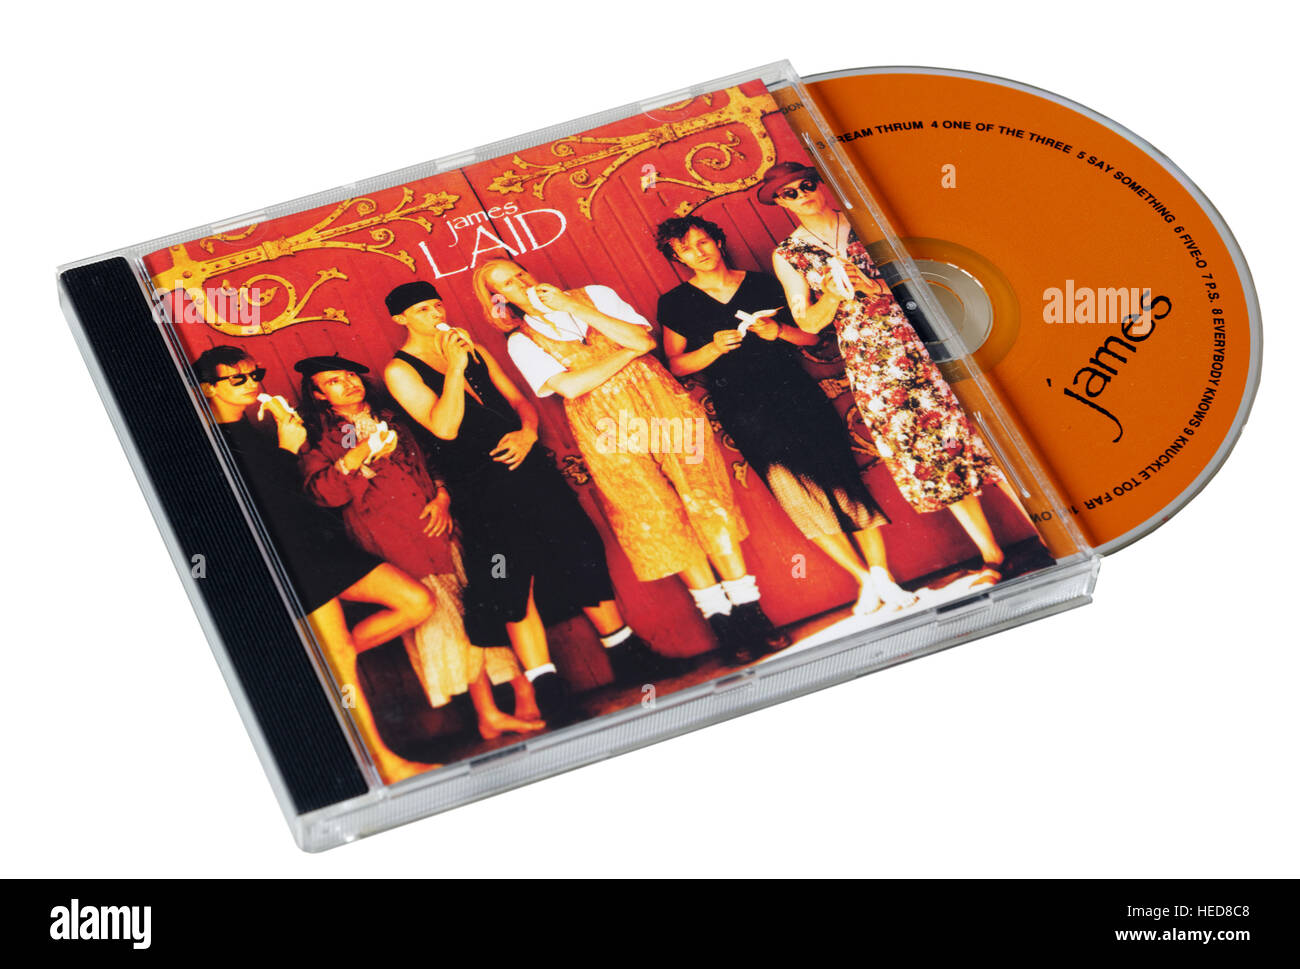 james Laid CD - Stock Image